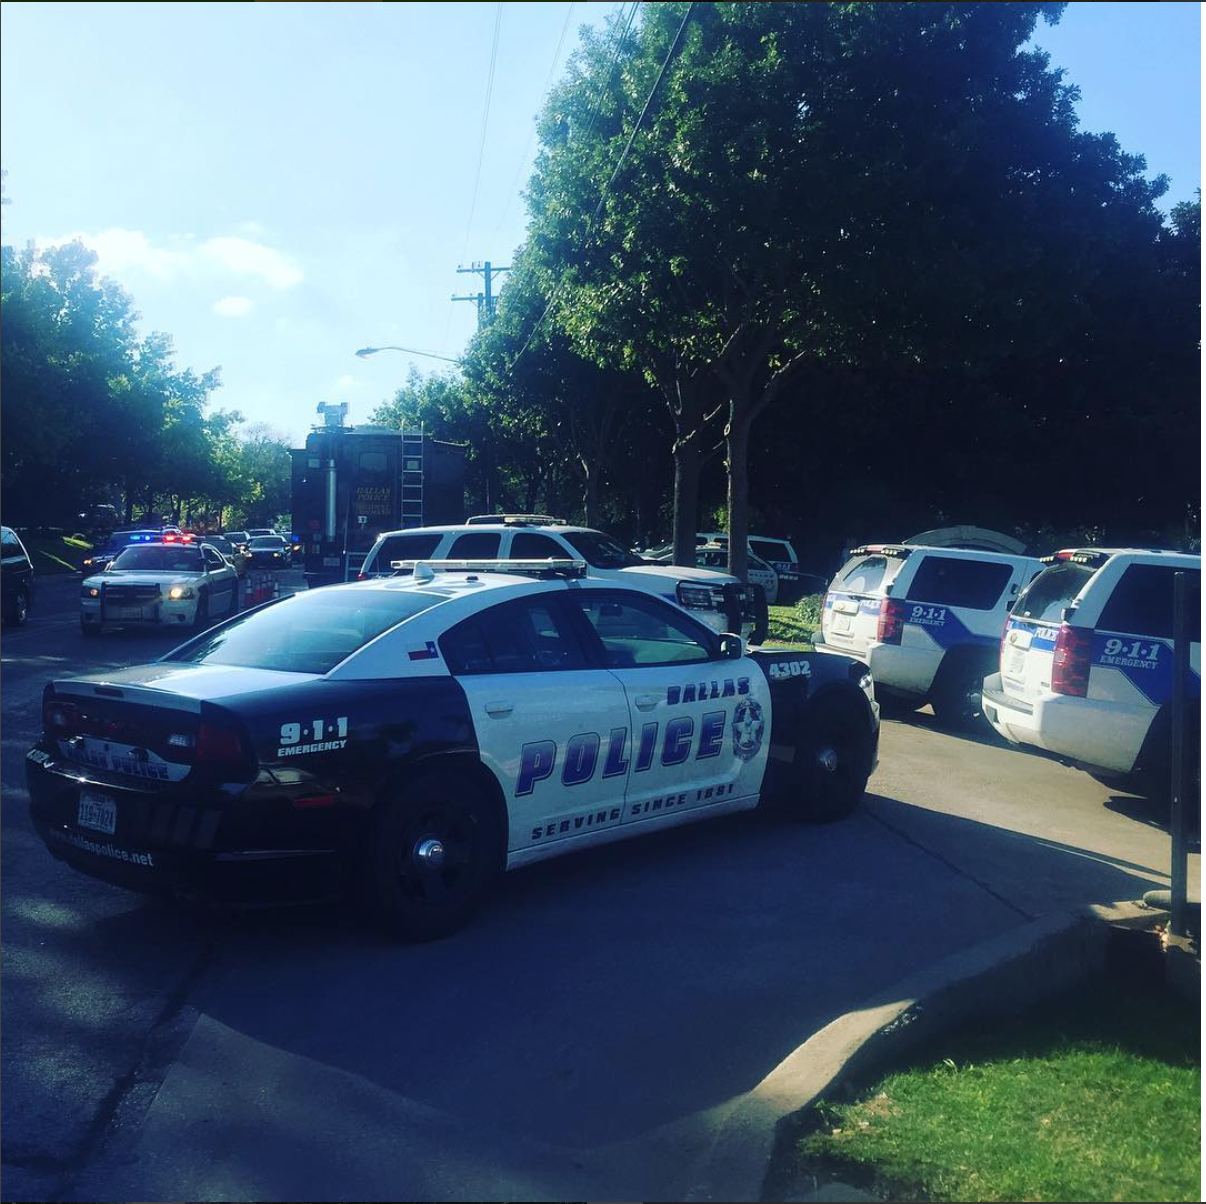 Dallas, TX. A veteran committed suicide at my apartment complex today. There were three shots but apparently they were all his. When SWAT blew his door open they found him on the couch having shot himself. Sometimes I hate my job, having to ask people when something horrible's happened how they feel. Another one of our veterans lost. #SnapshotLives